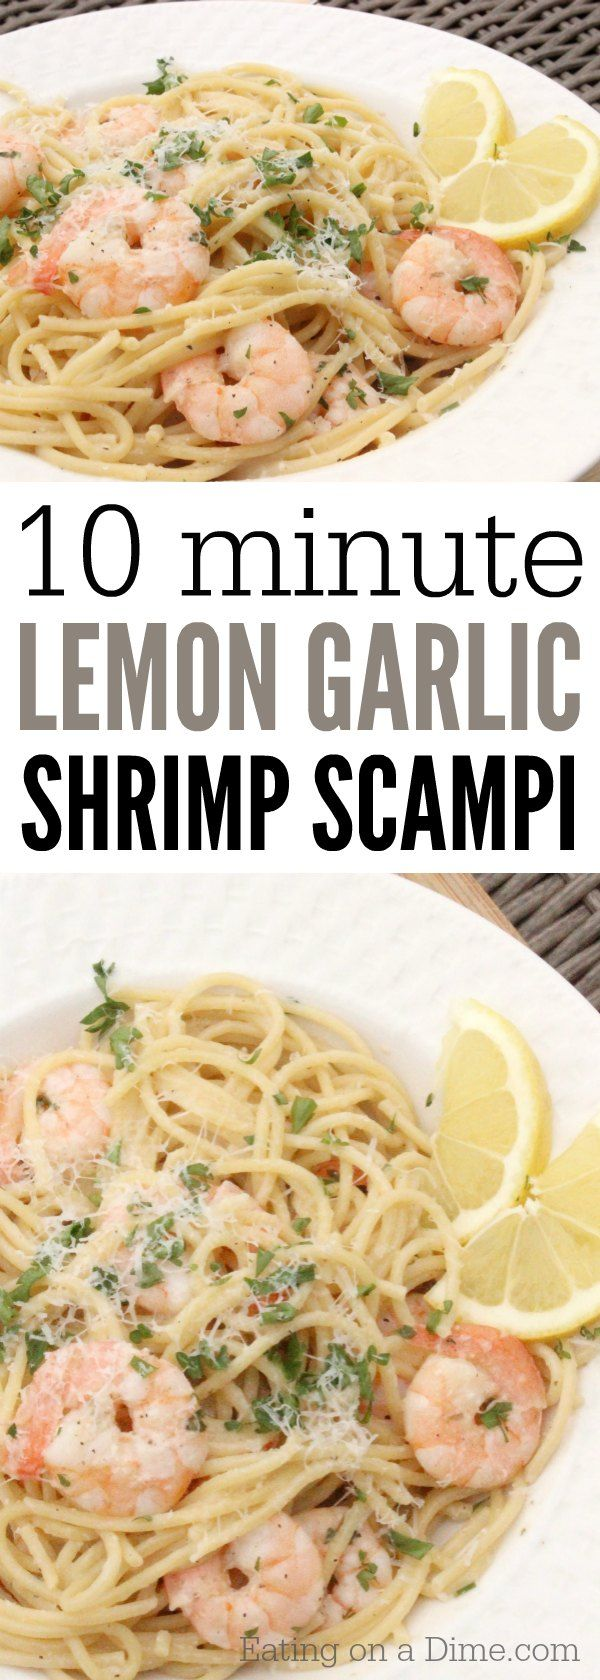 You are going to love this Lemon Garlic Shrimp Scampi Recipe - in just 10 minutes this easy shrimp scampi recipe is done. It is our favorite shrimp recipes.